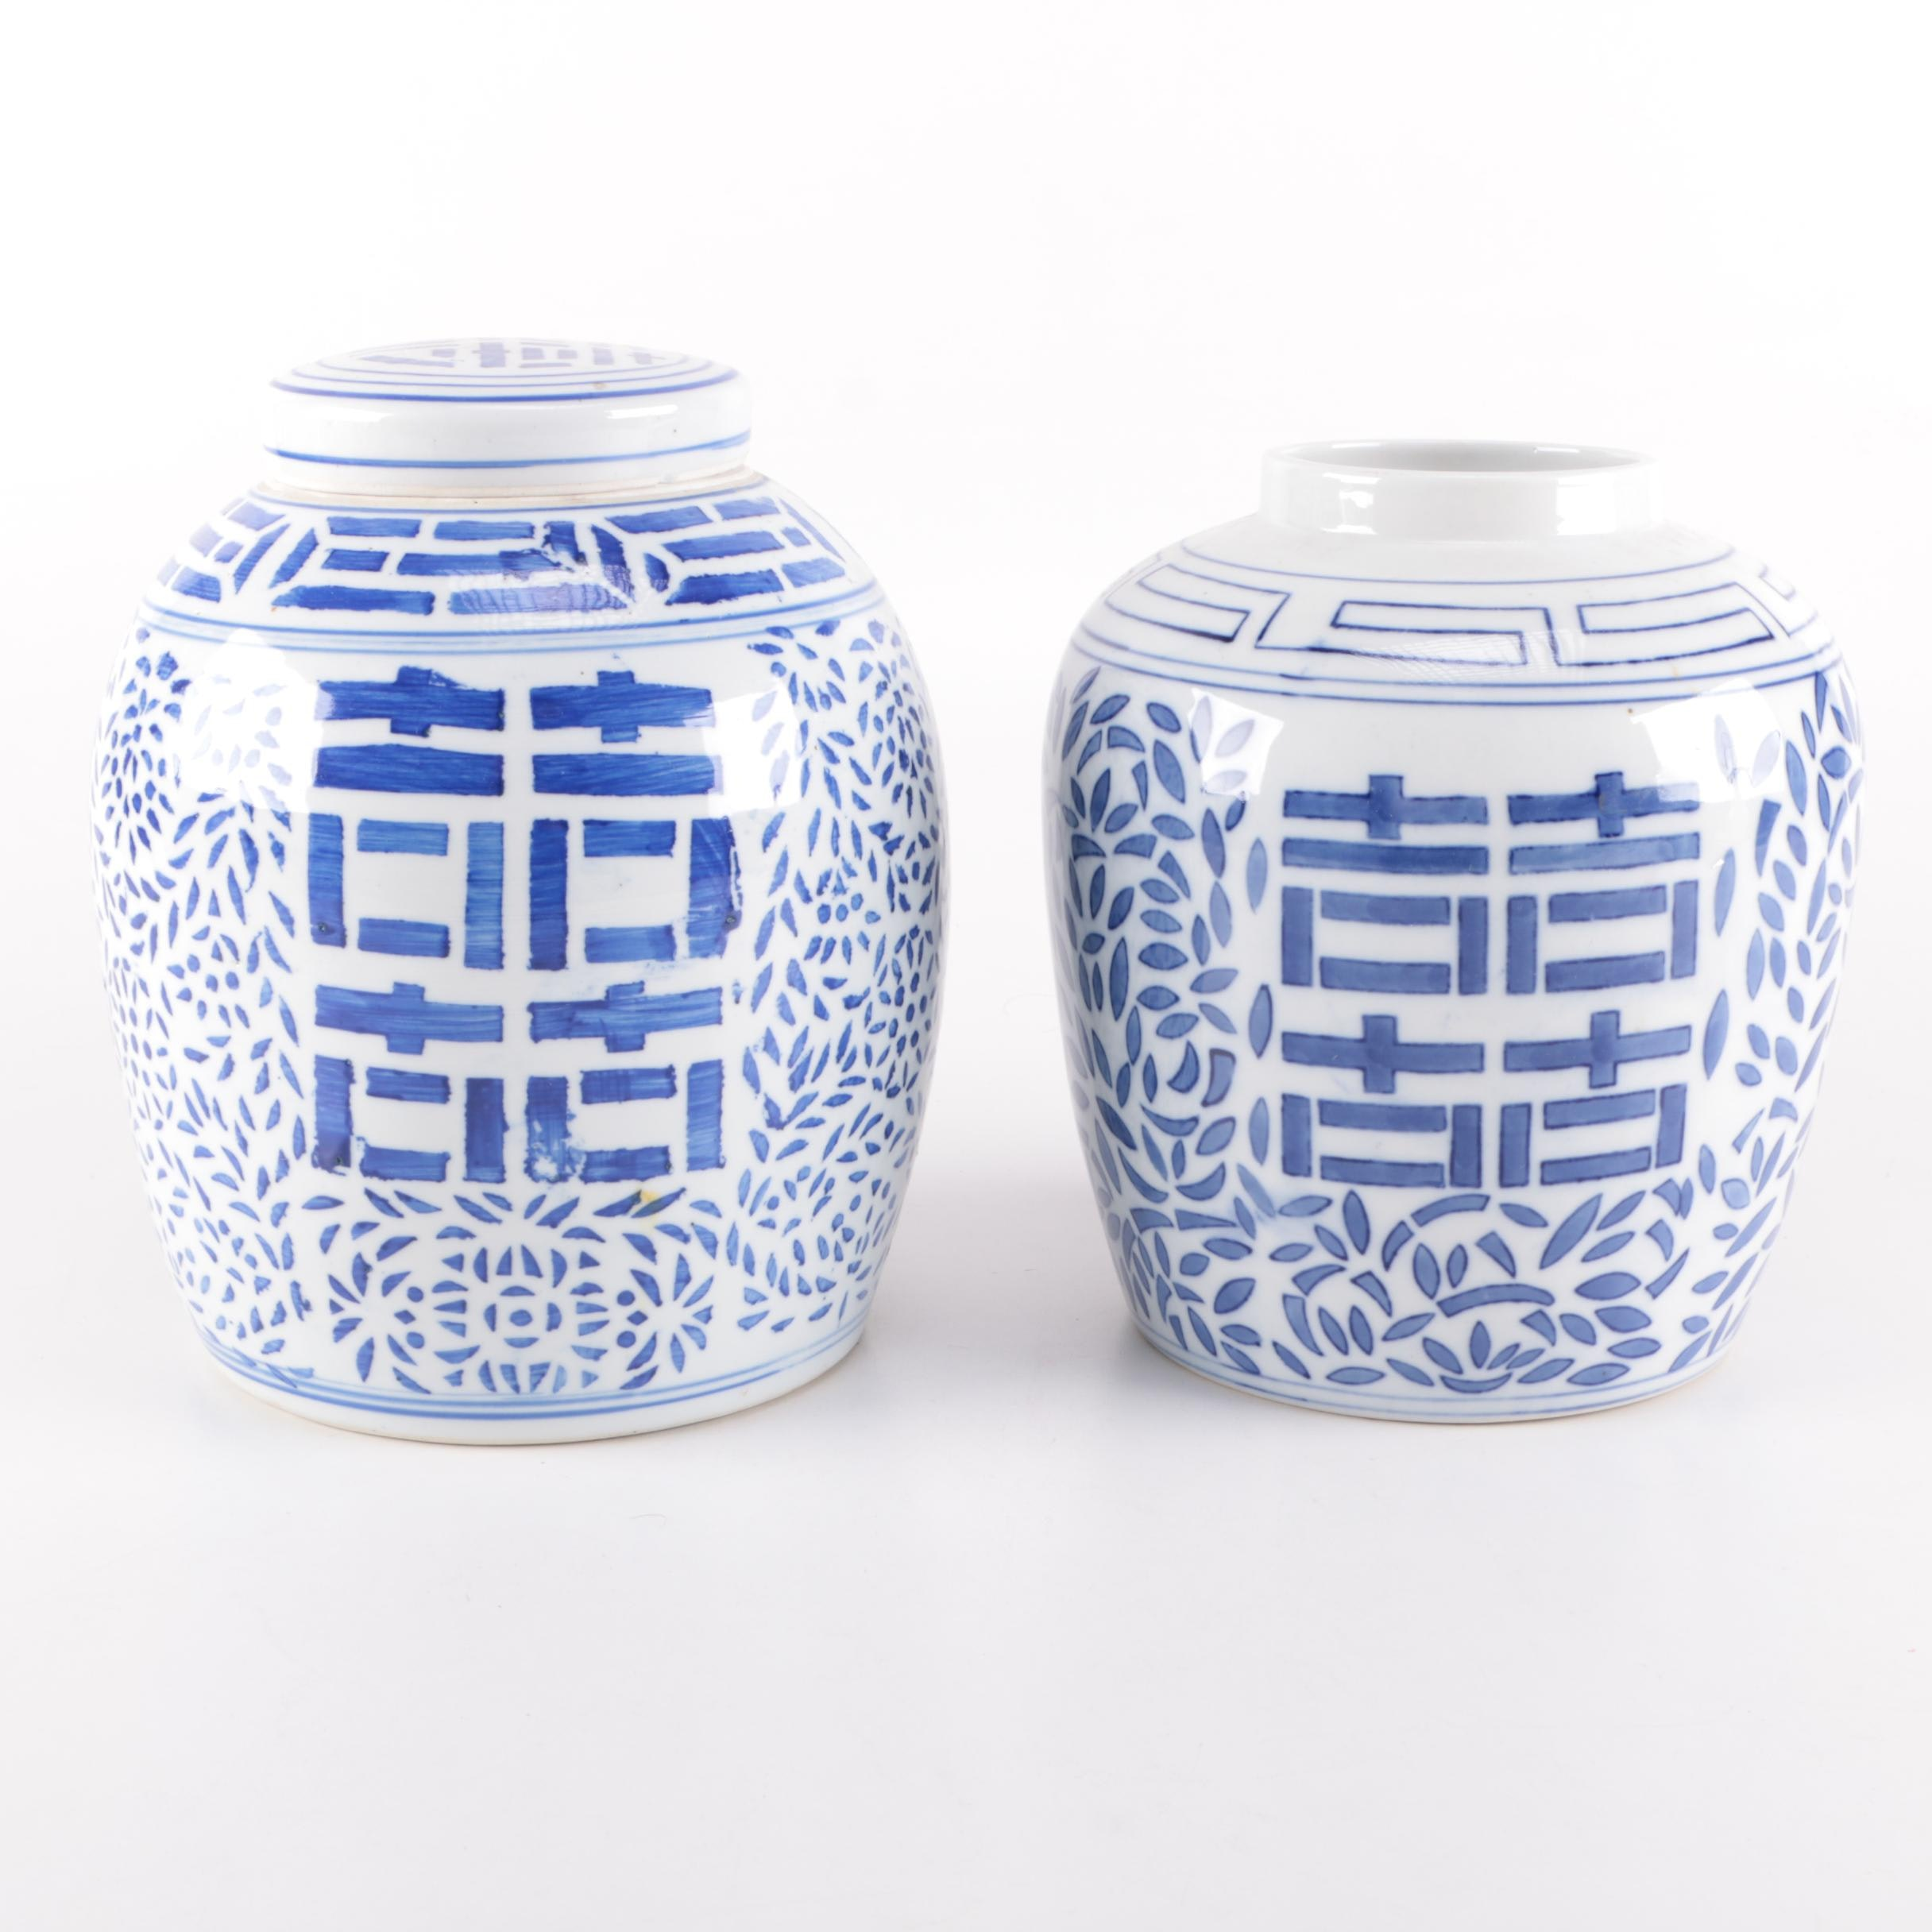 Asian-Inspired White and Blue Urn Jars